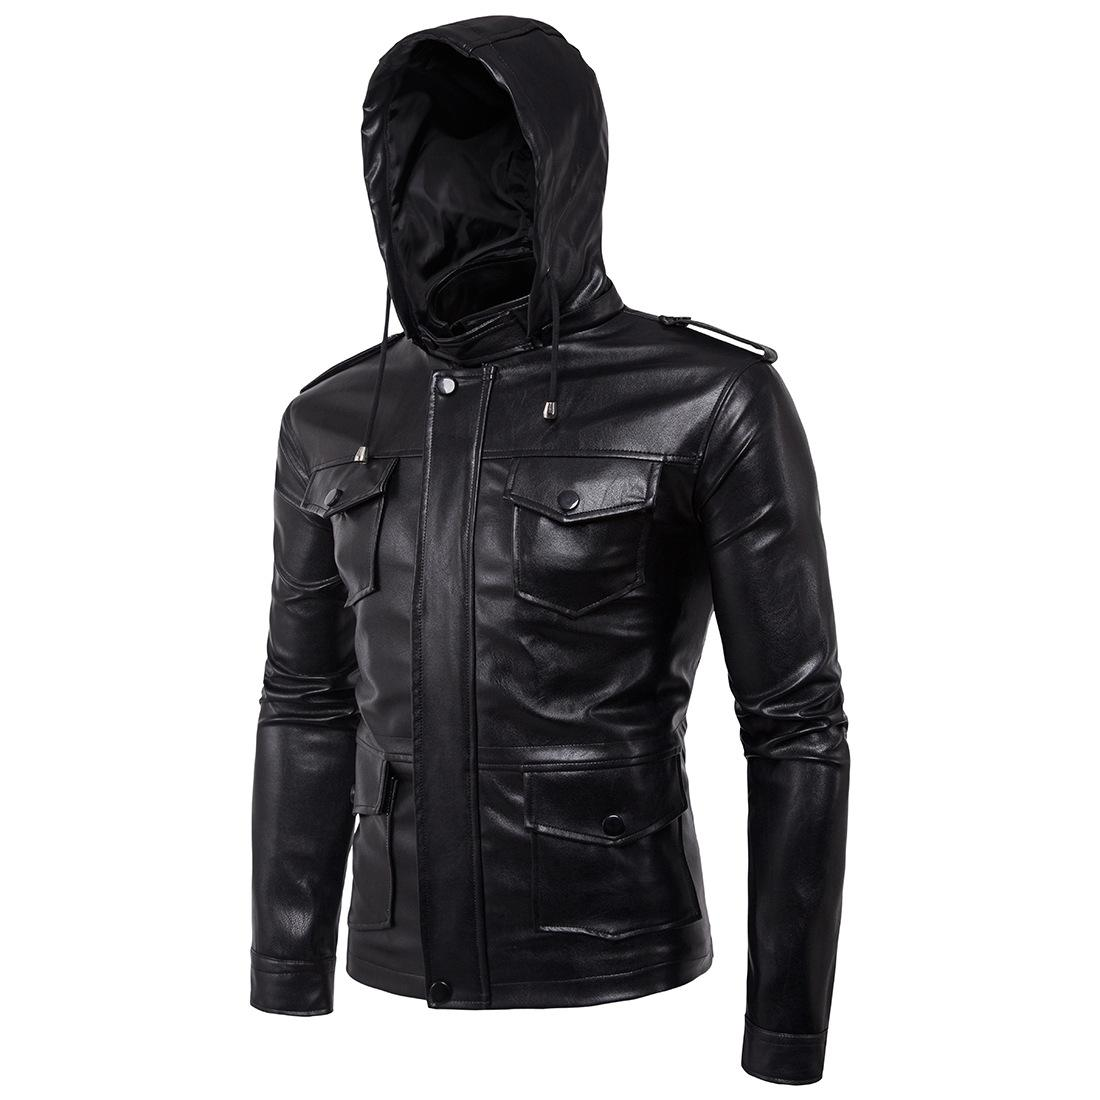 5c2c3d0f74d 2019 Mens Leather Jacket With Hood Motorcycle Jacket Young Men Slim Fit  Zipper Blazers For Boys US Fashion Style 5XL Size From Aaronliu880, $36.55  | DHgate.